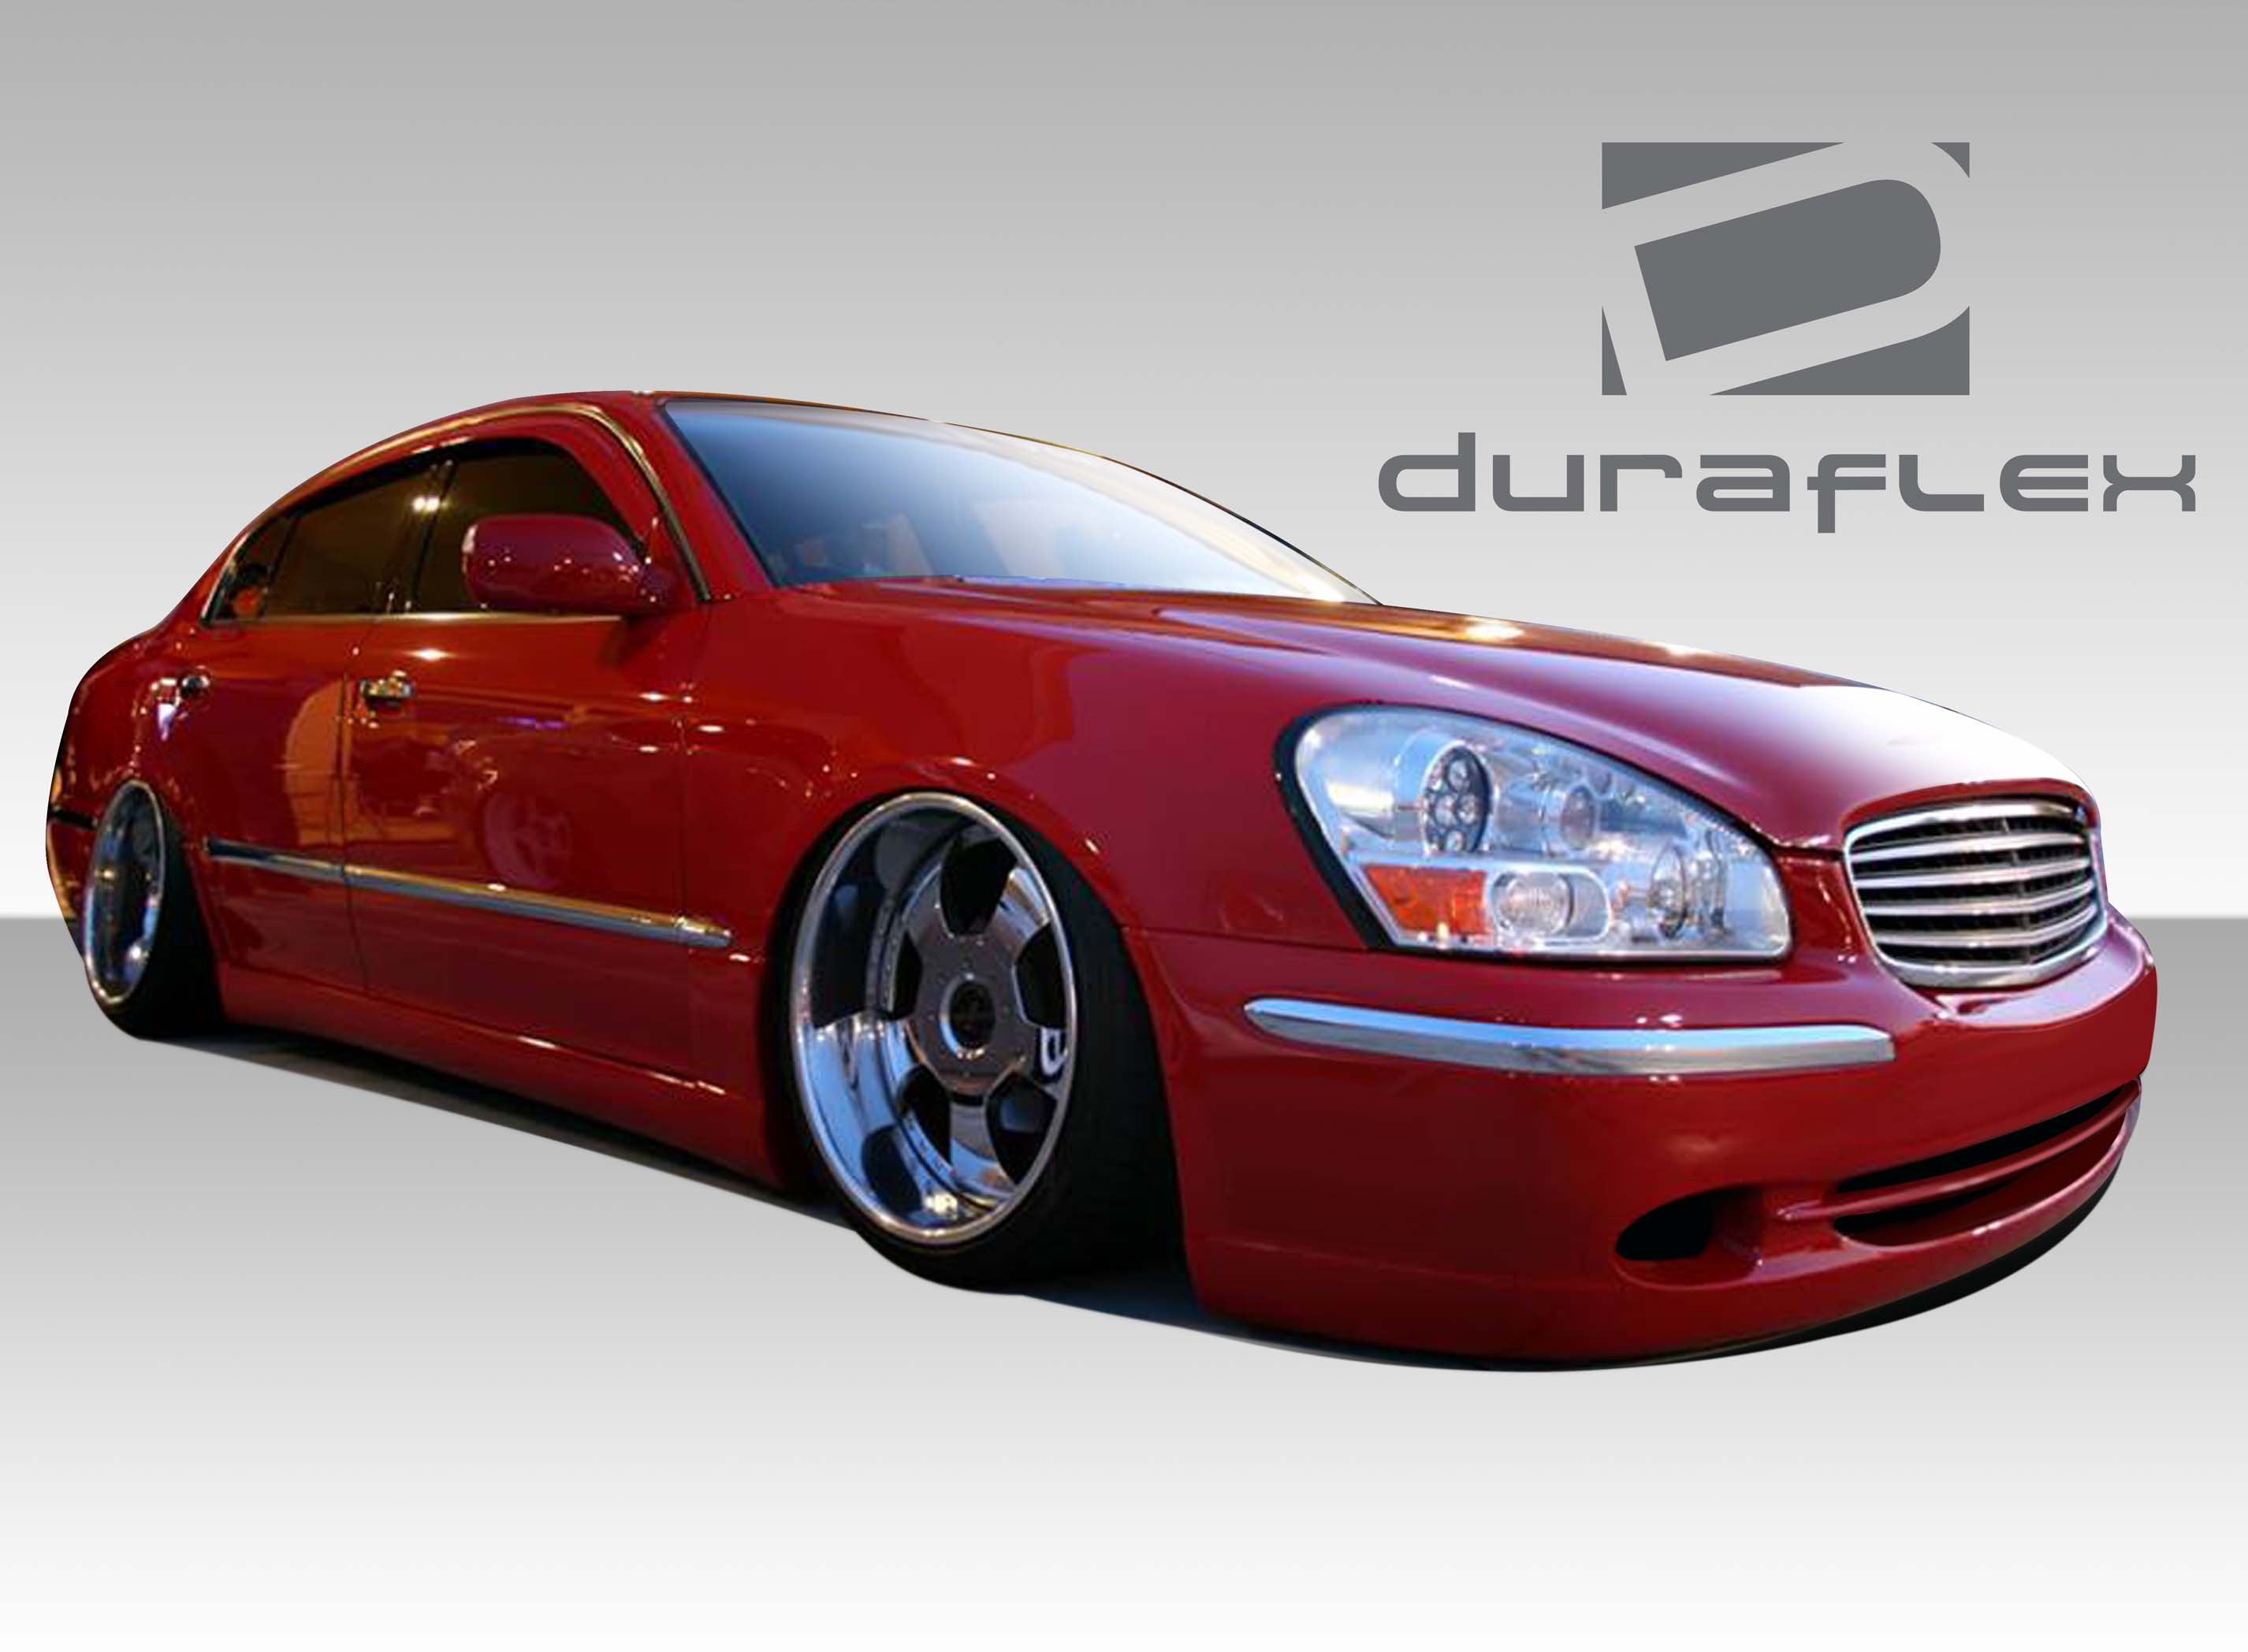 Welcome to extreme dimensions item group 2002 2004 infiniti welcome to extreme dimensions item group 2002 2004 infiniti q45 duraflex vip design body kit 4 piece vanachro Images